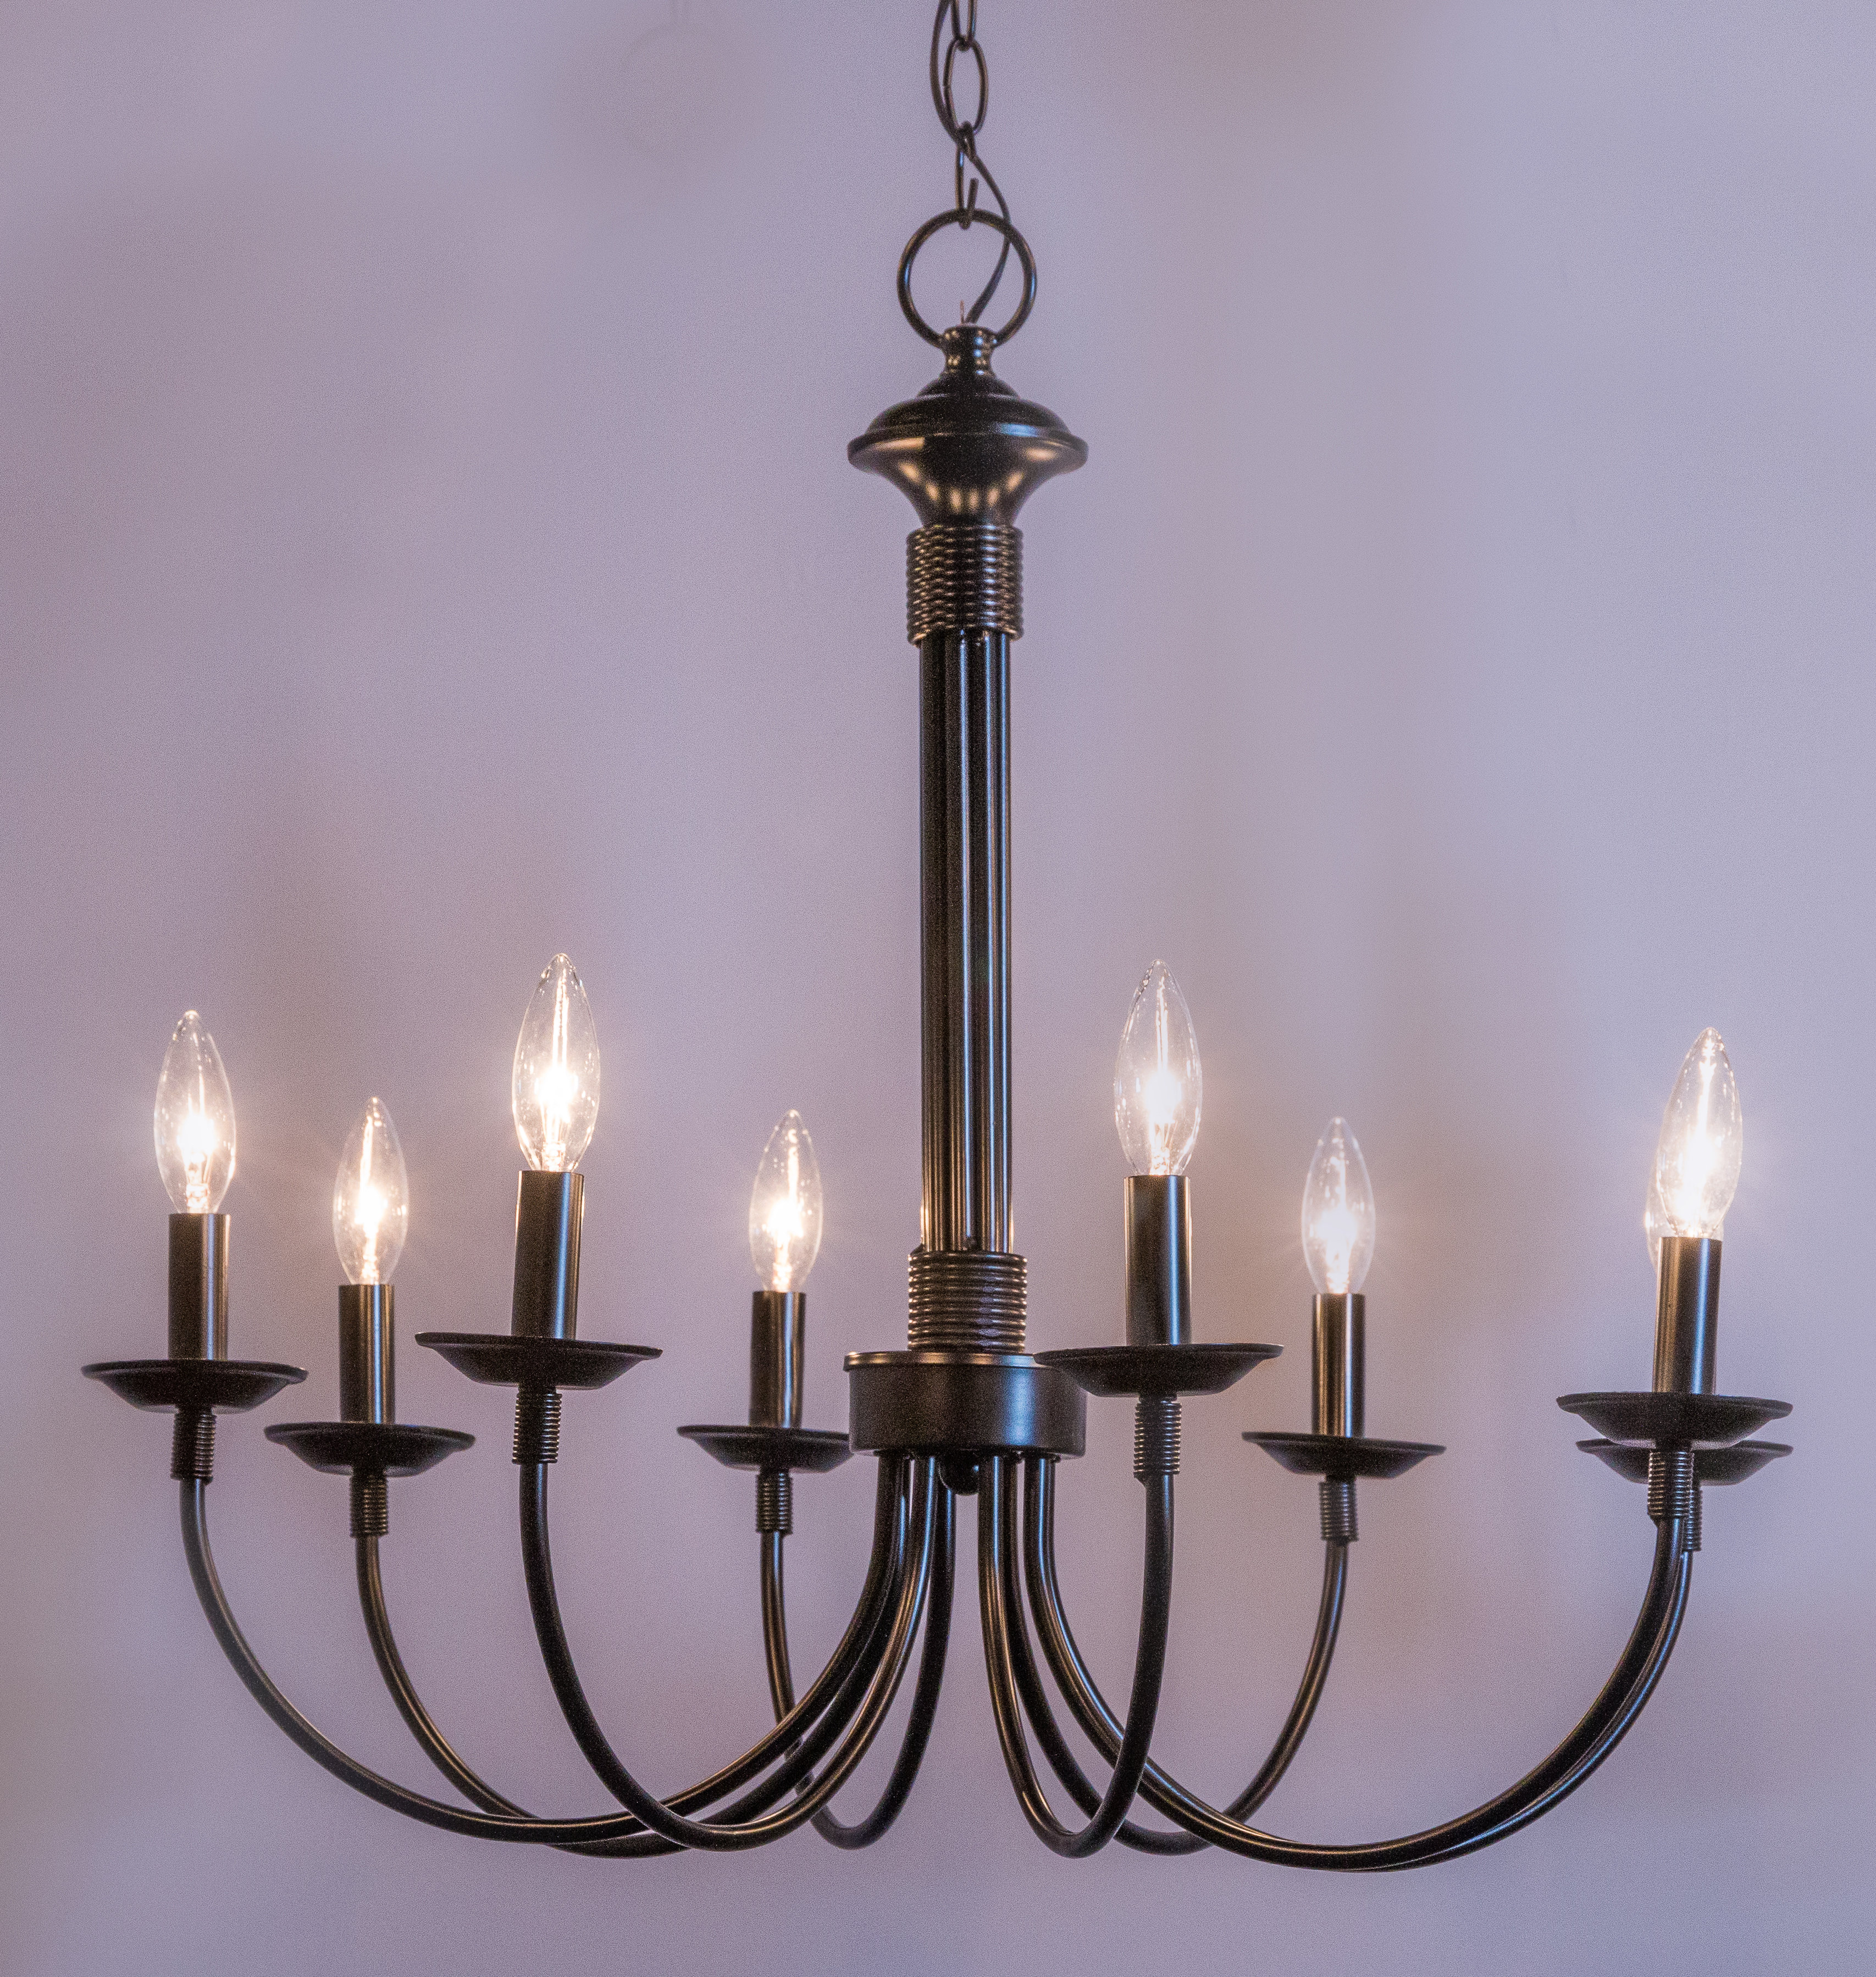 Laurel Foundry Modern Farmhouse Shaylee 8 Light Candle Style Chandelier For Shaylee 8 Light Candle Style Chandeliers (View 6 of 30)